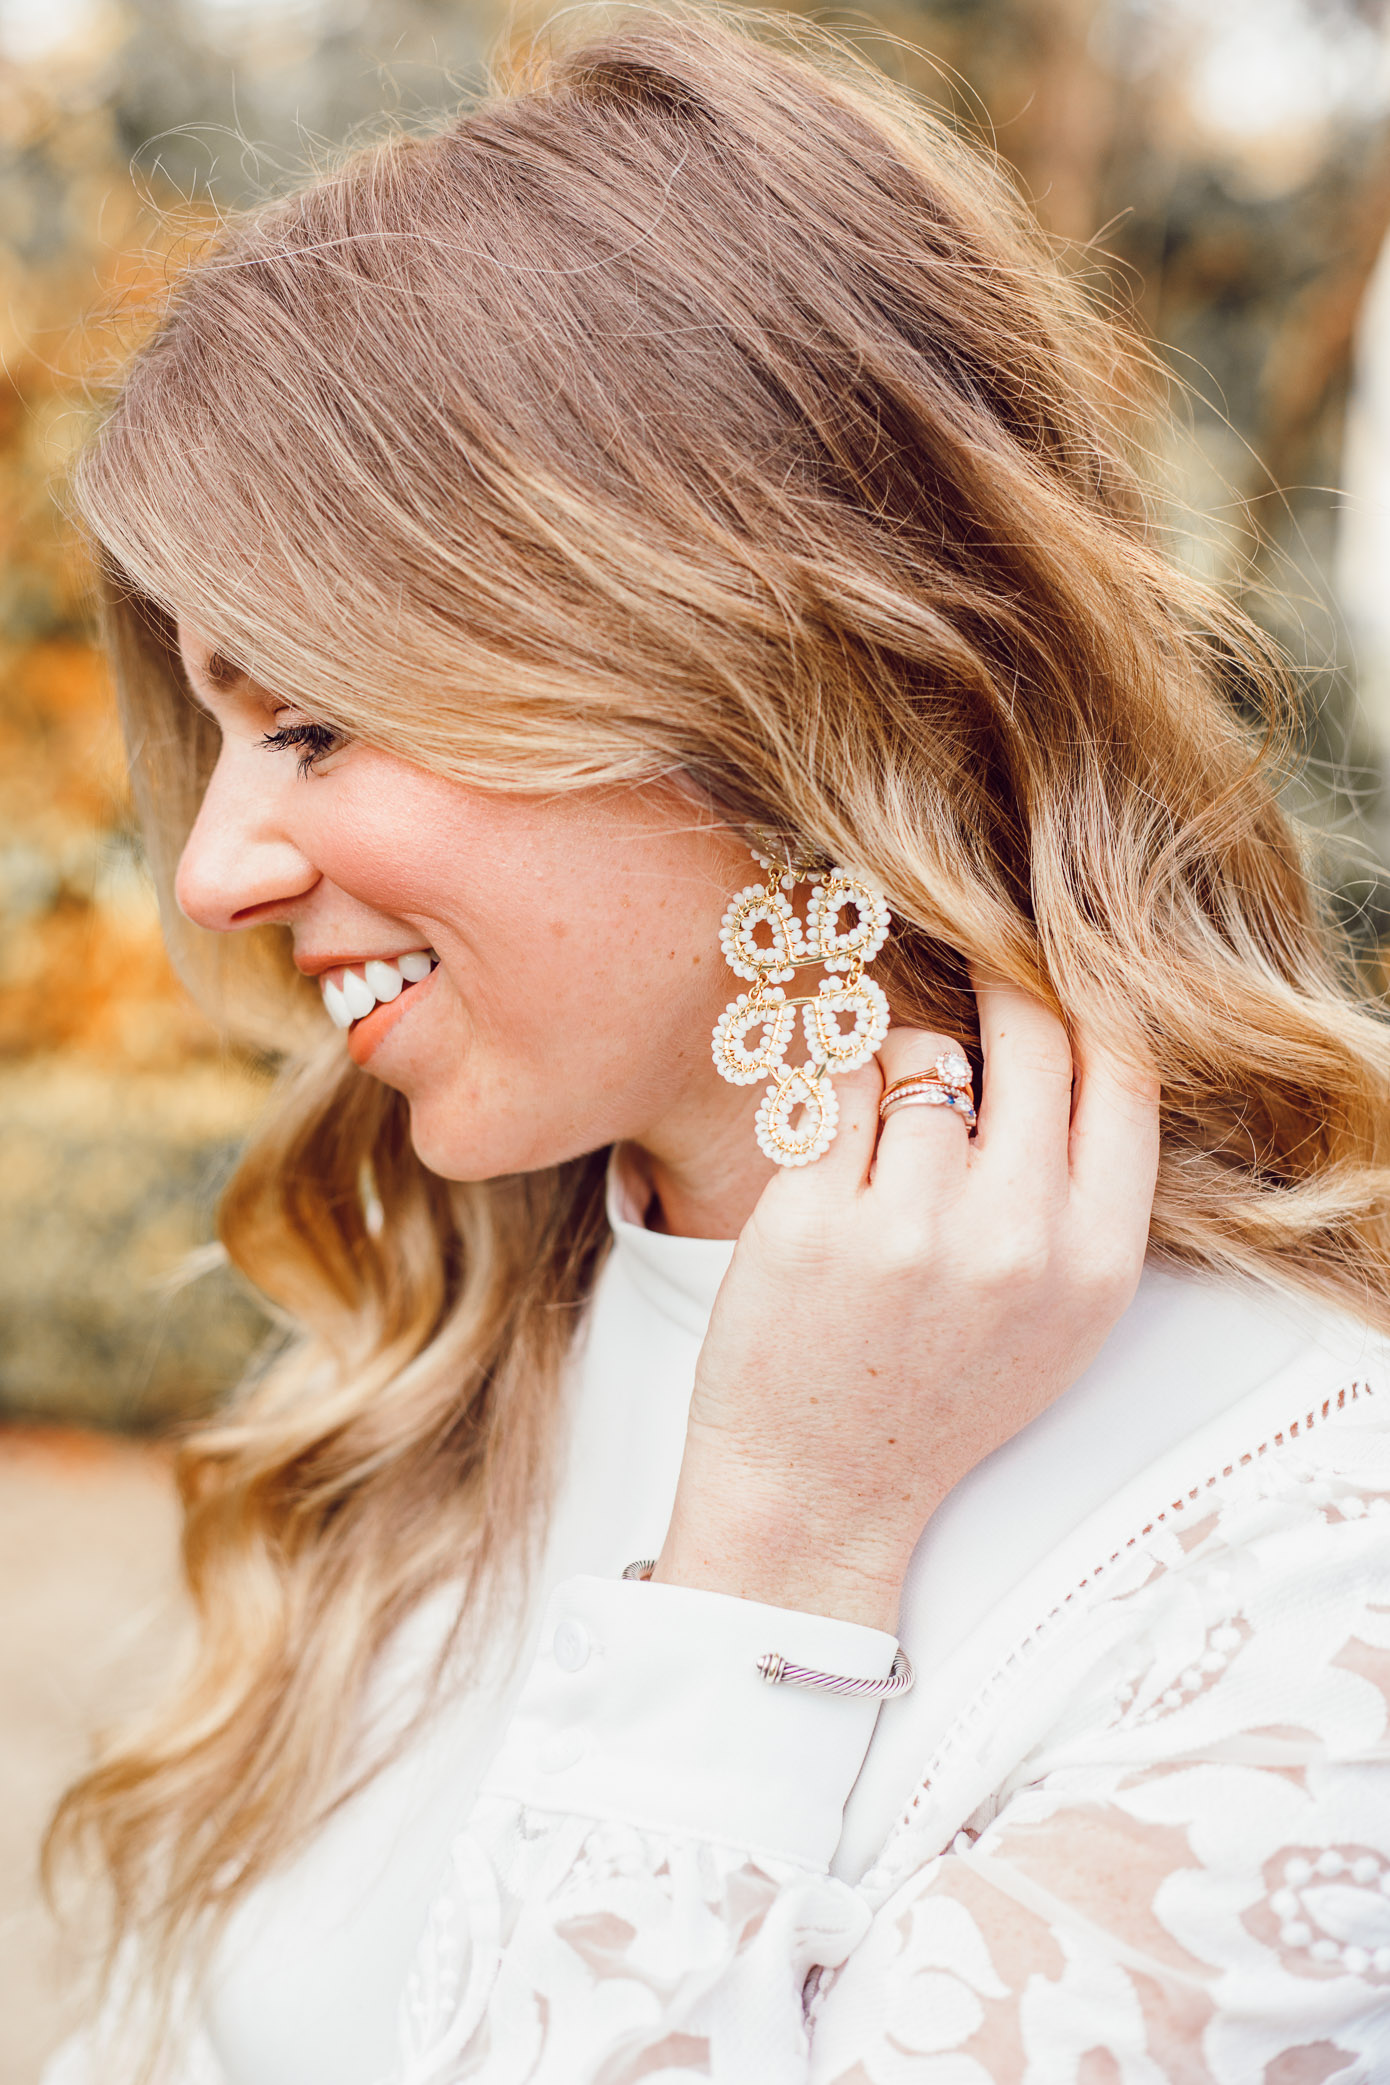 Lisi Lerch Ginger Statement Earrings   White and Gold Statement Earrings   Bridal Style featured on Louella Reese